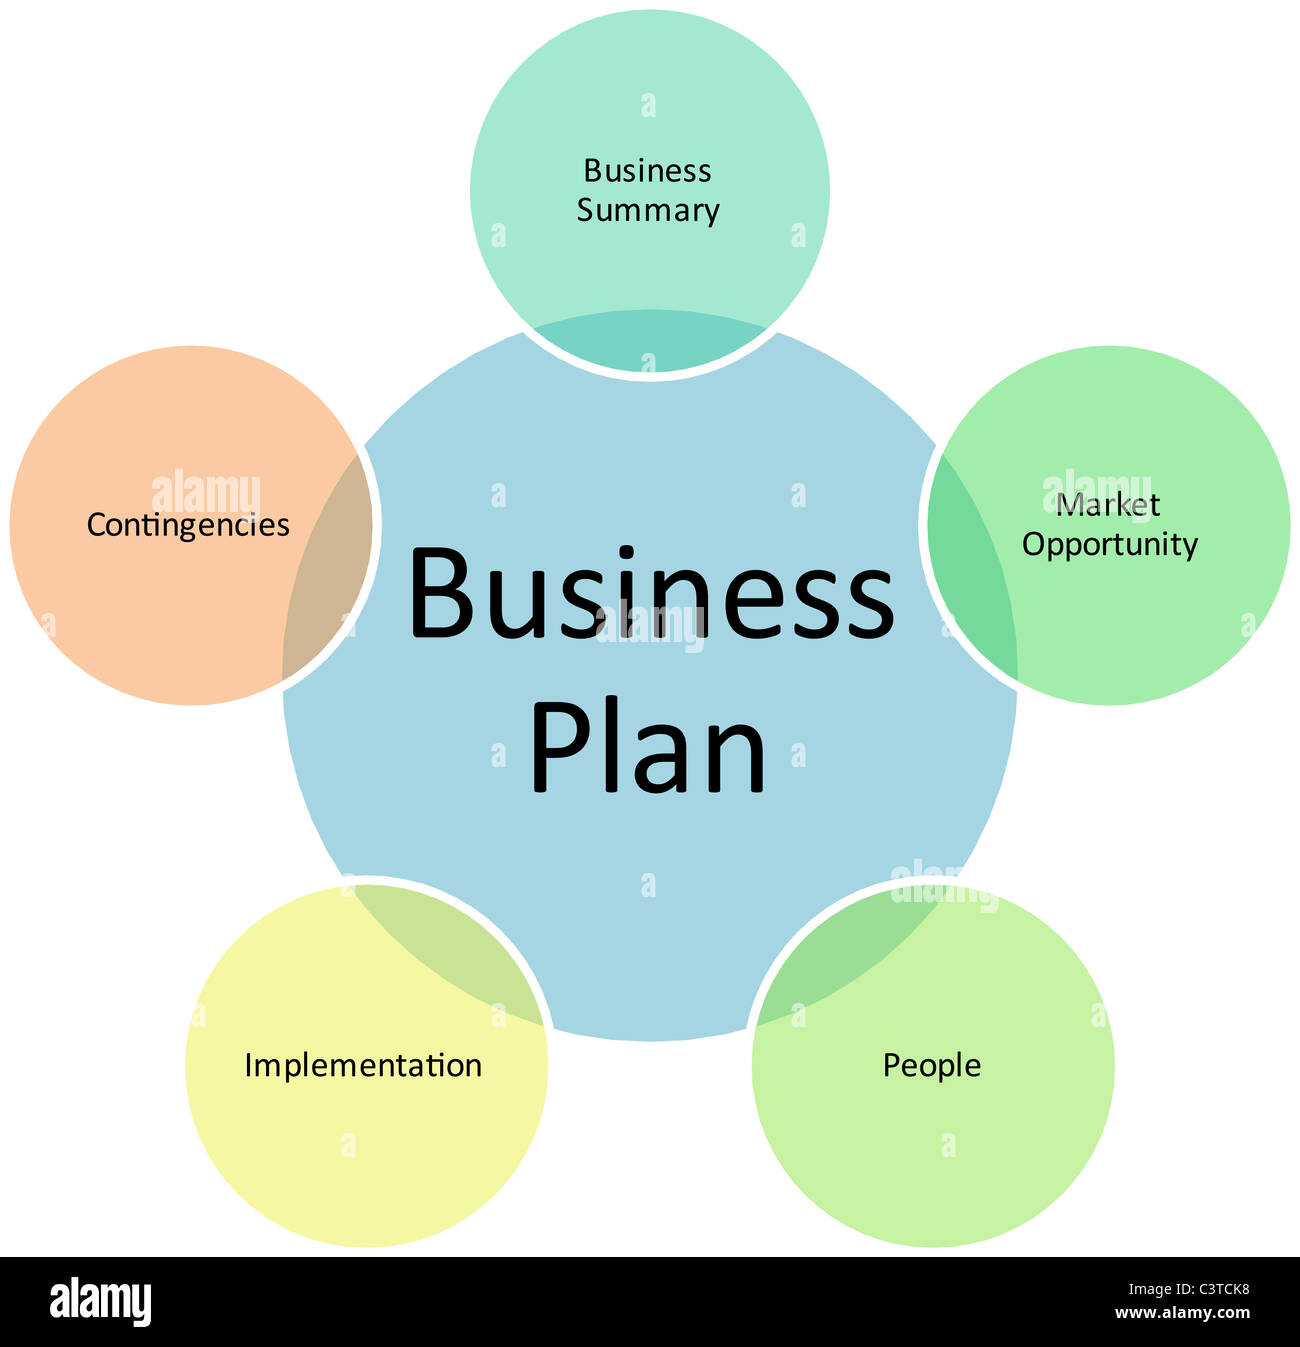 Business plan buying an existing business